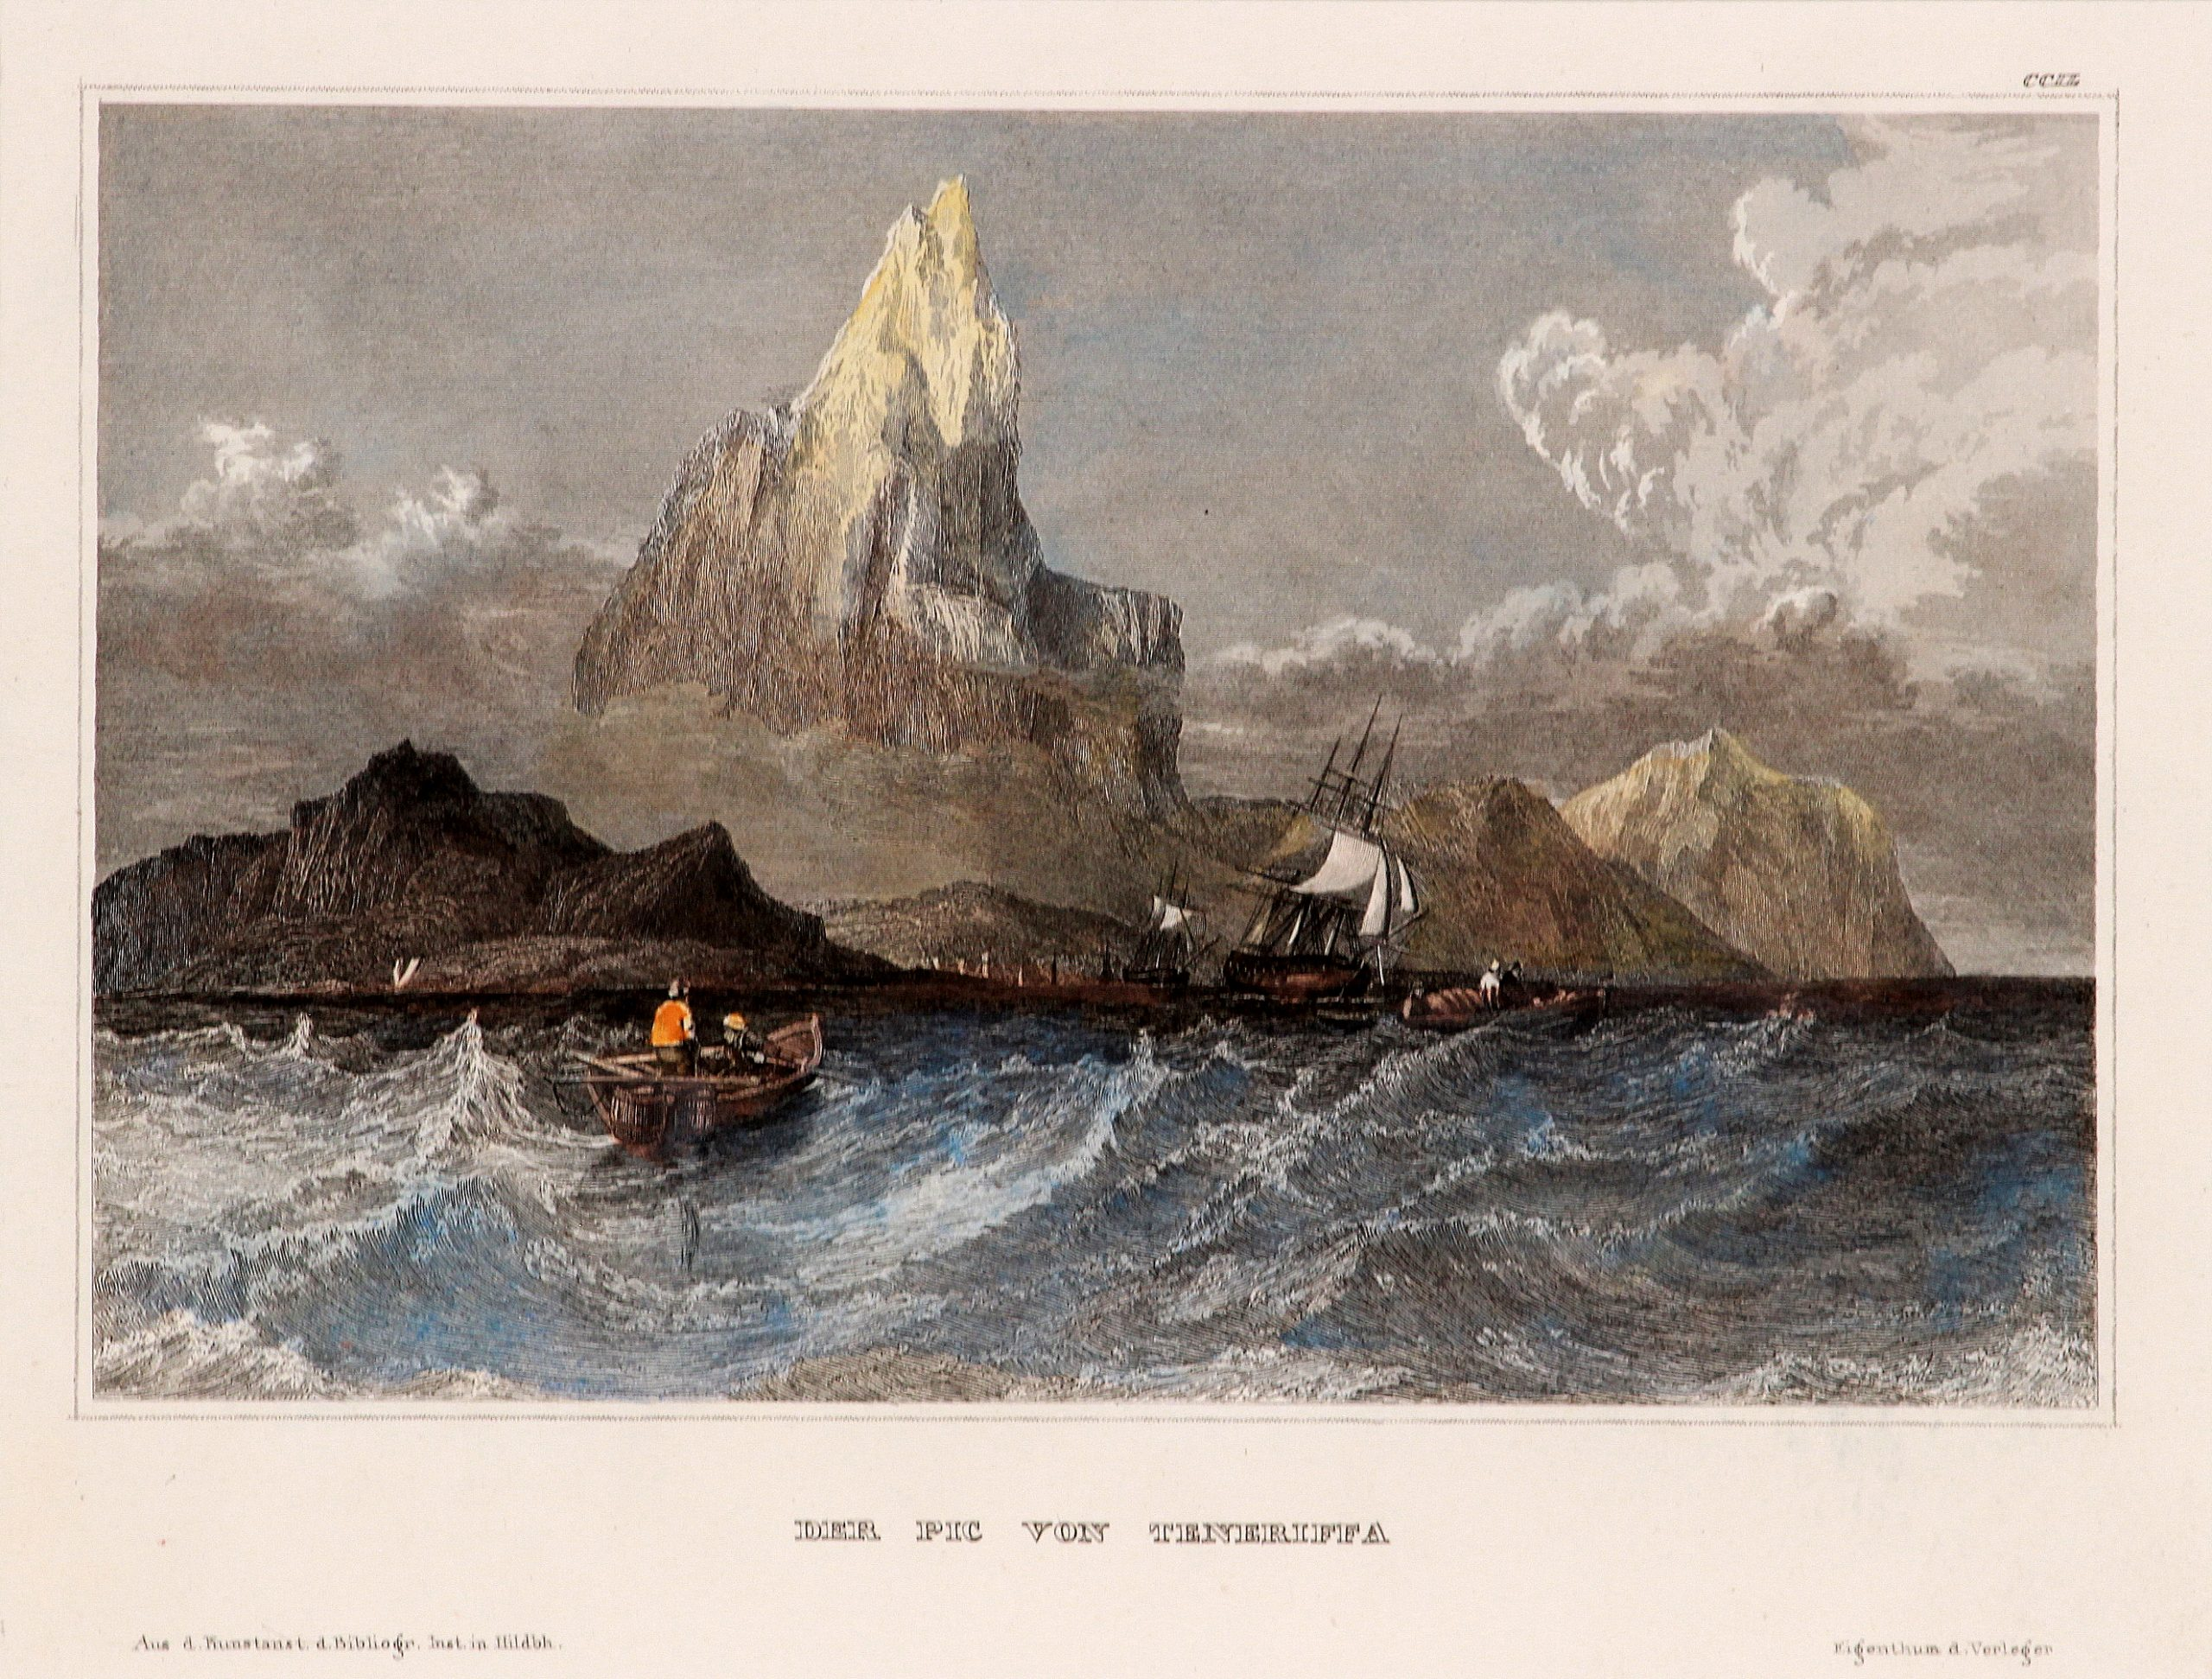 Antique etching seascape with boats and mountains